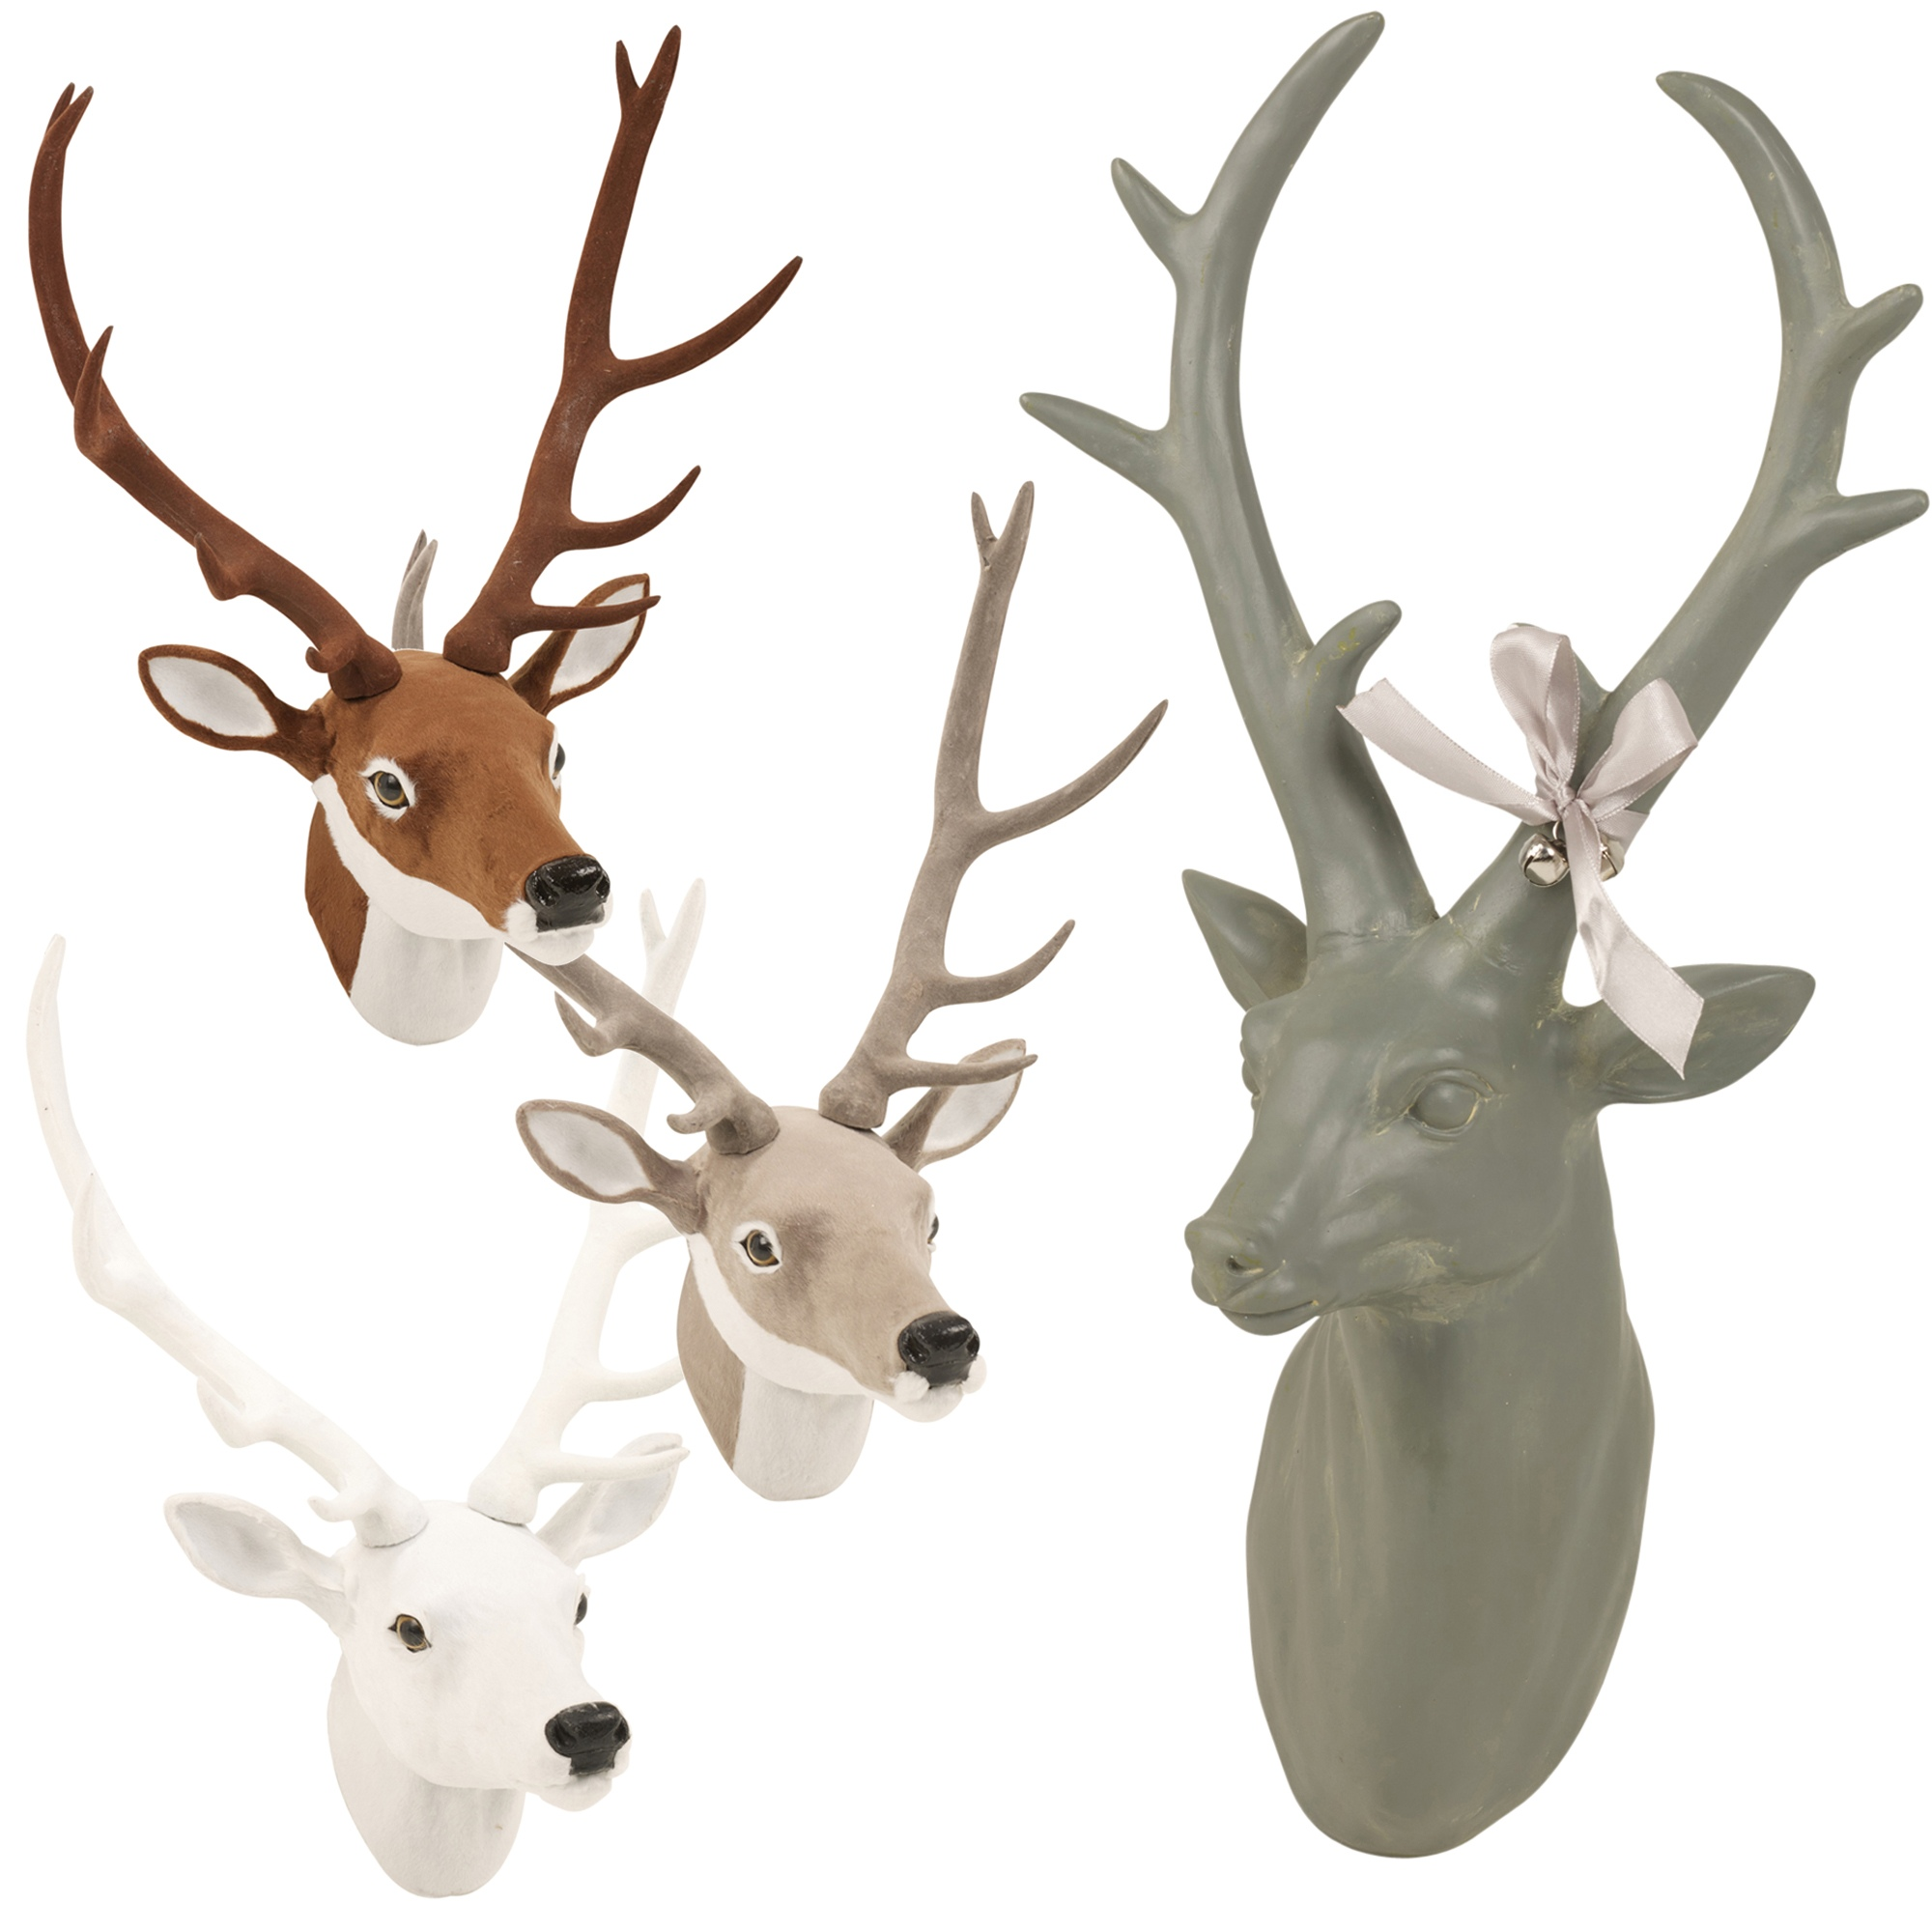 Wall Mounted Reindeer Head Decoration Stag Ornament Deer